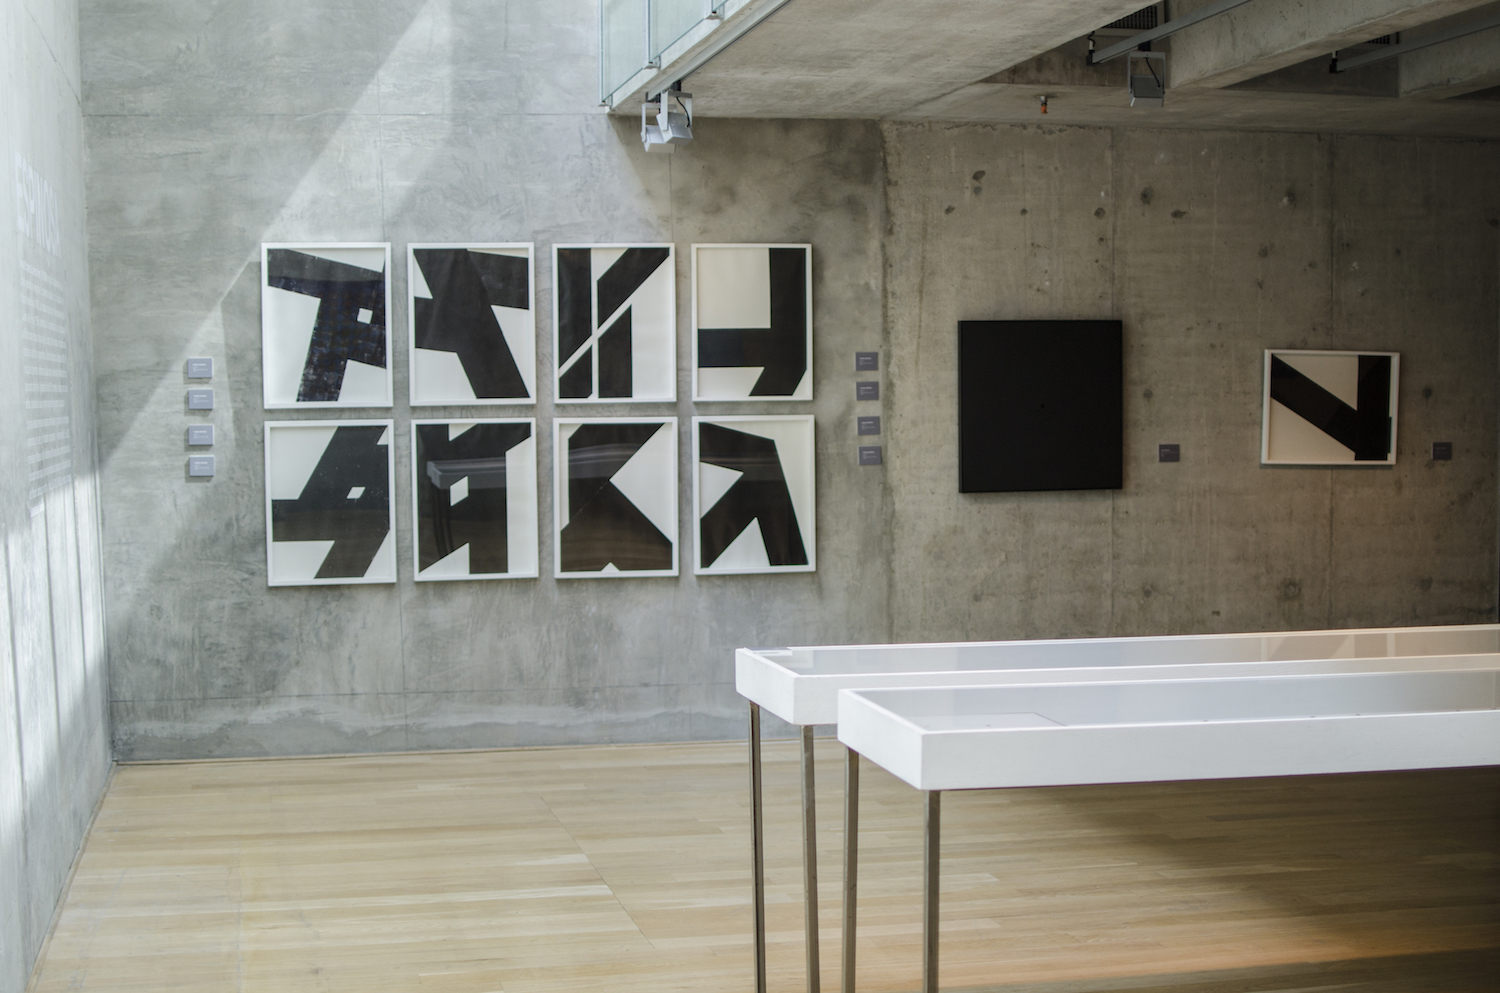 Works by Luis Tomasello and Manuel Espinosa. Photo: Franco Degrossi. Courtesy of MACBA